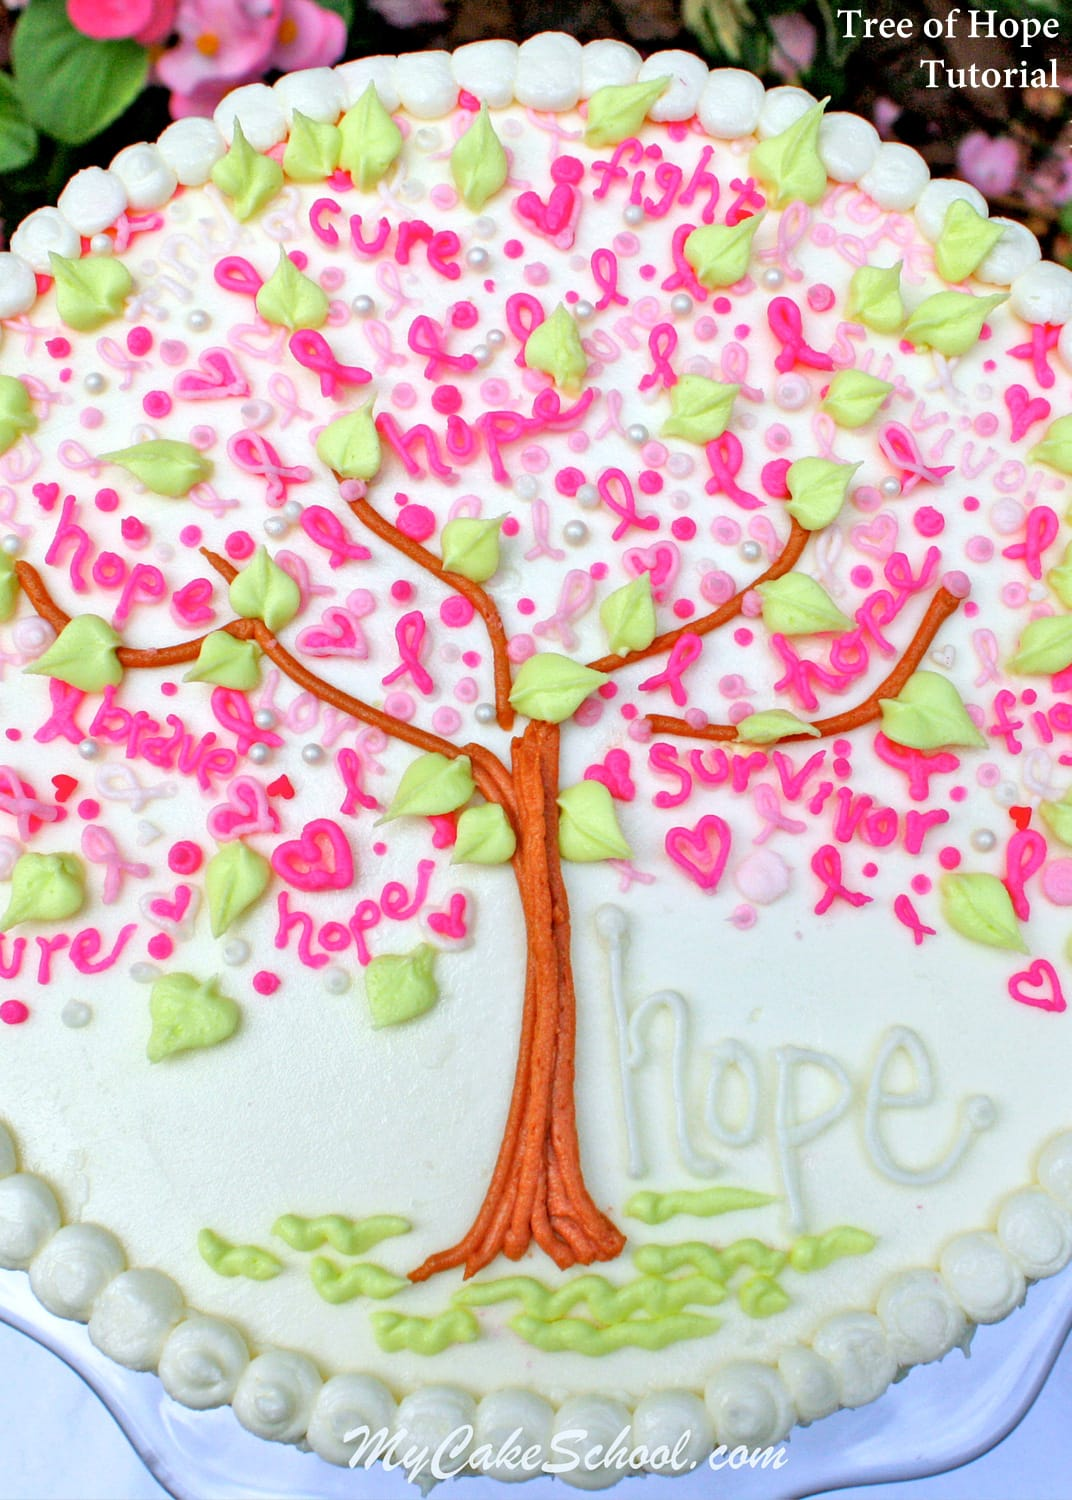 """Tree of Hope"" Cake Tutorial by MyCakeSchool.com"